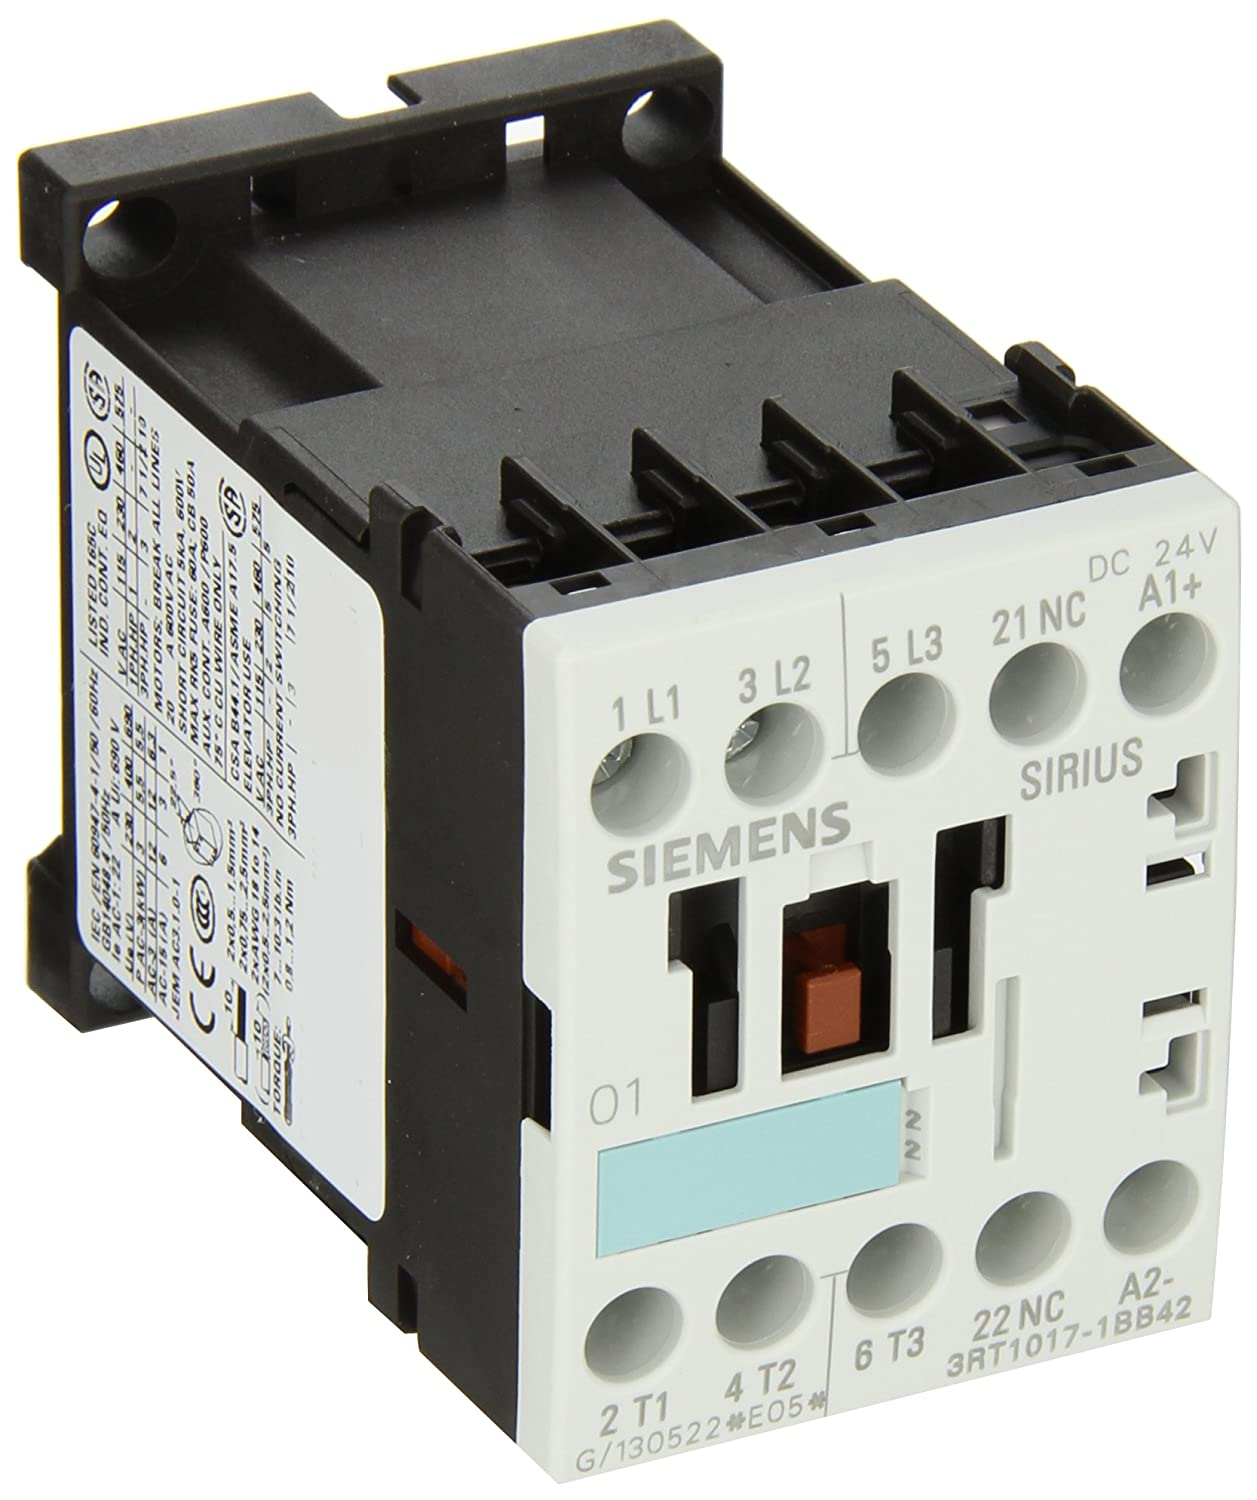 24V DC Coil Voltage Screw Terminals 1 NO Auxiliary Contact S00 Frame Size Siemens 3RT10 17-1BB41 Motor Contactor 3 Poles